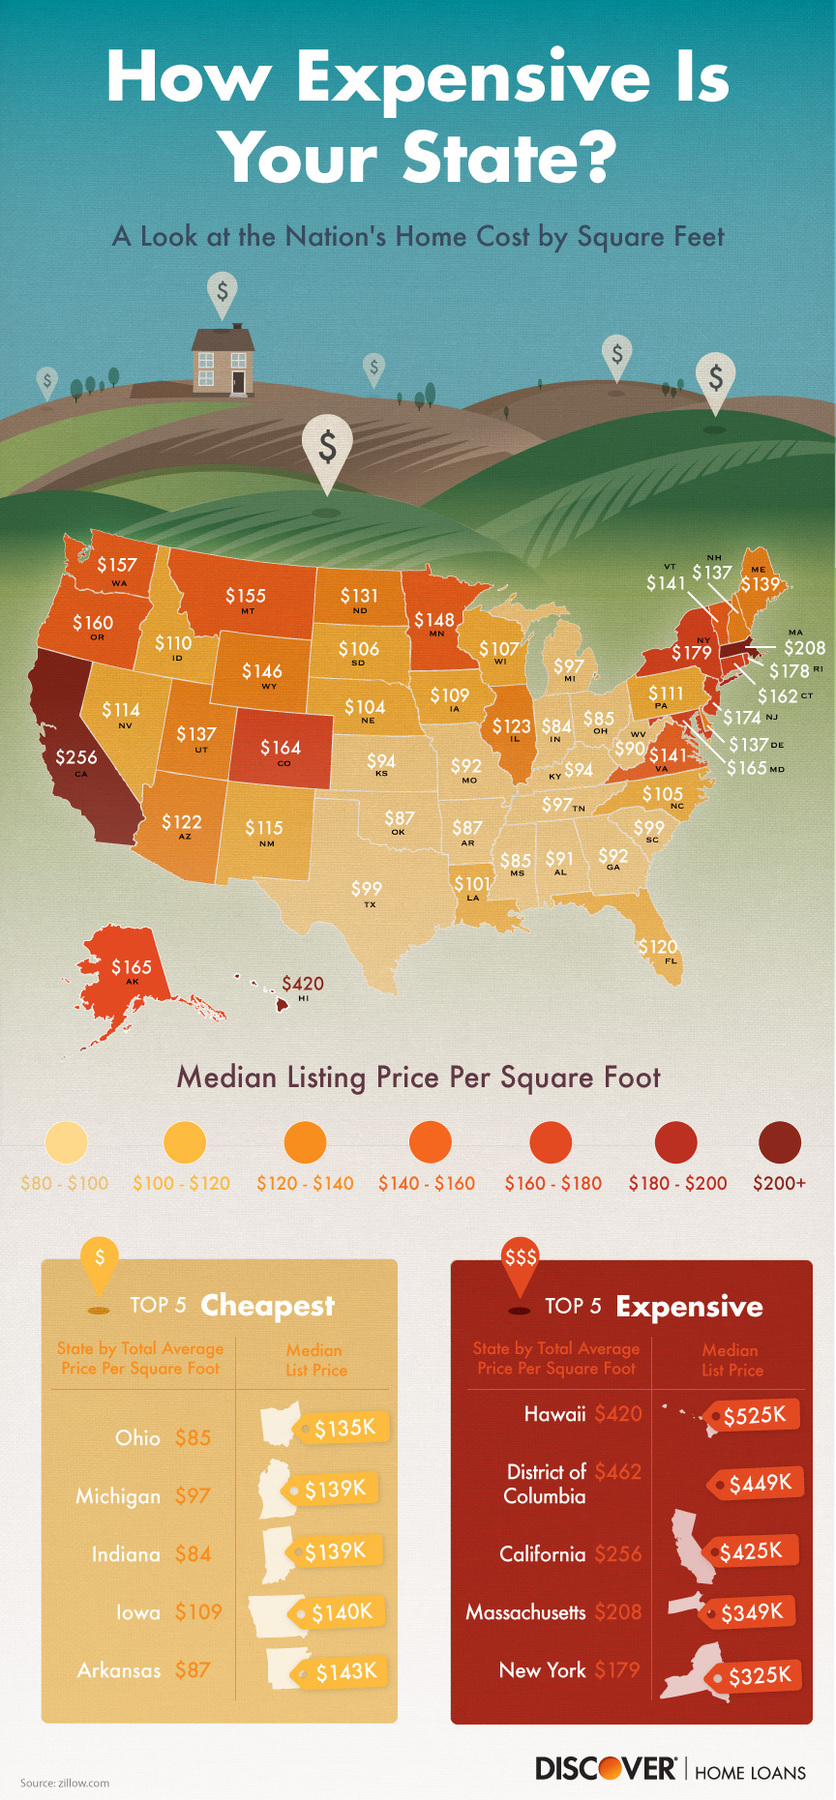 average price per square foot map - discover home loans